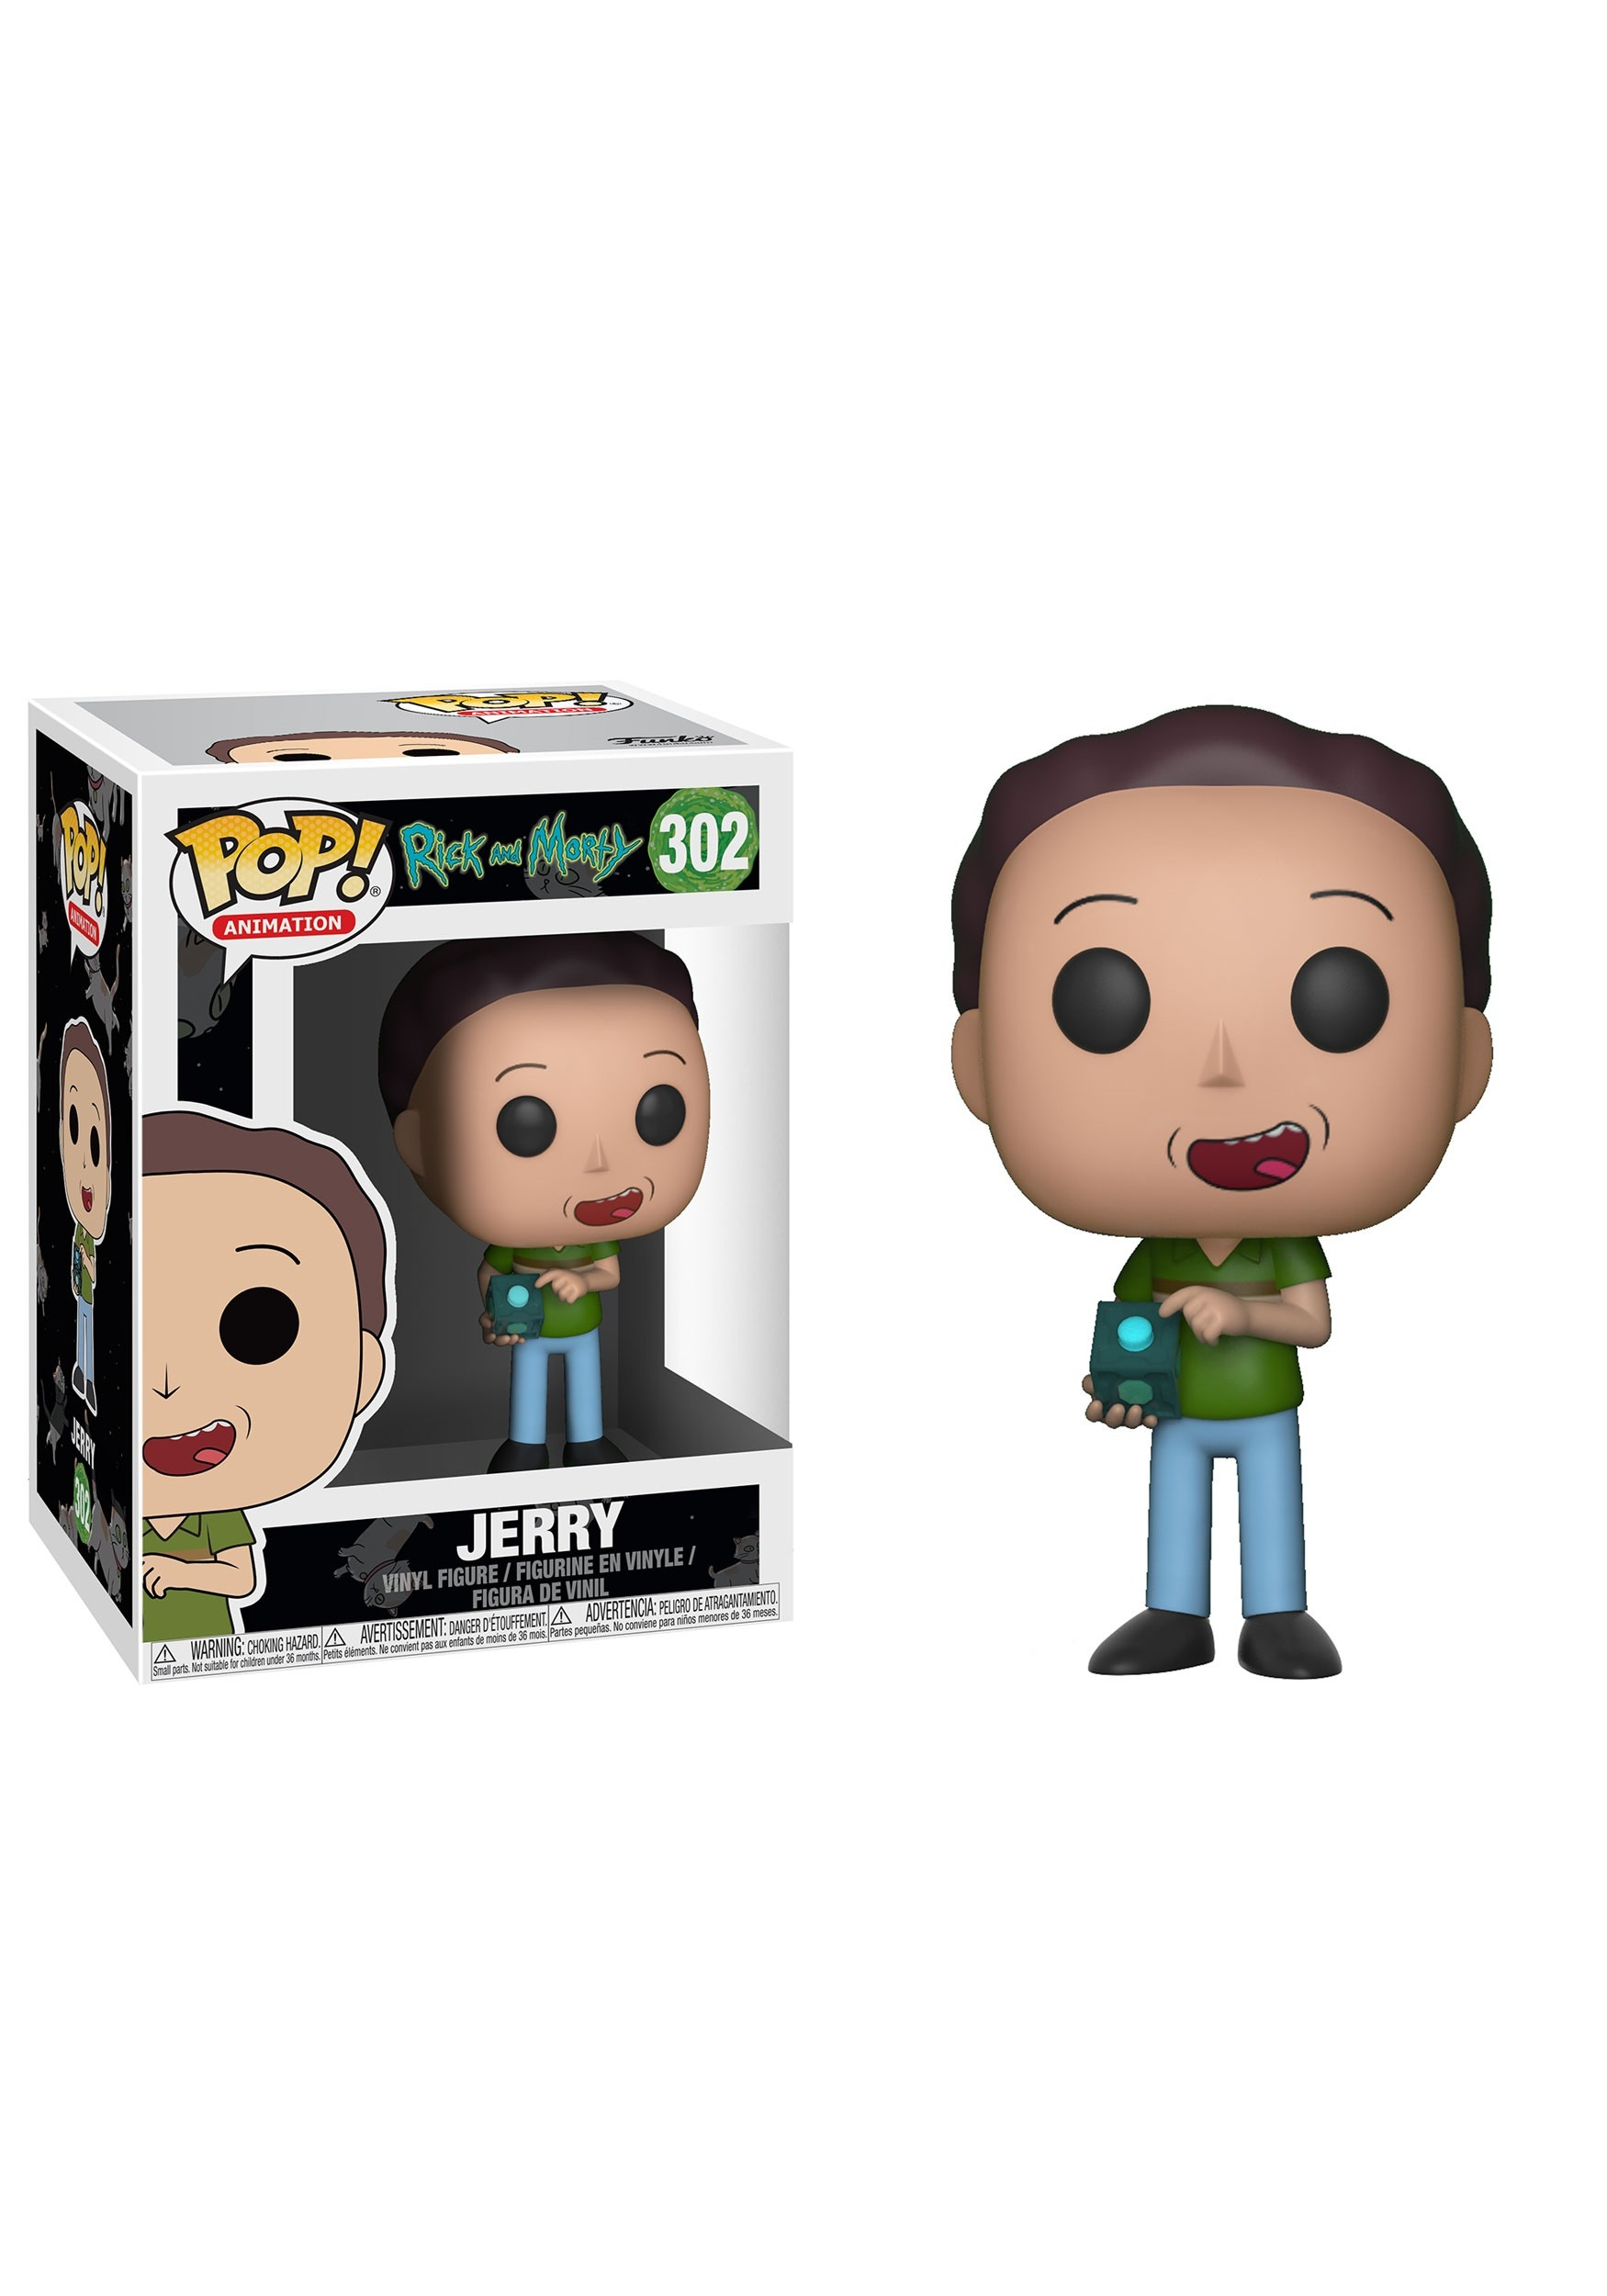 Jerry Pop Rick And Morty Vinyl Figure